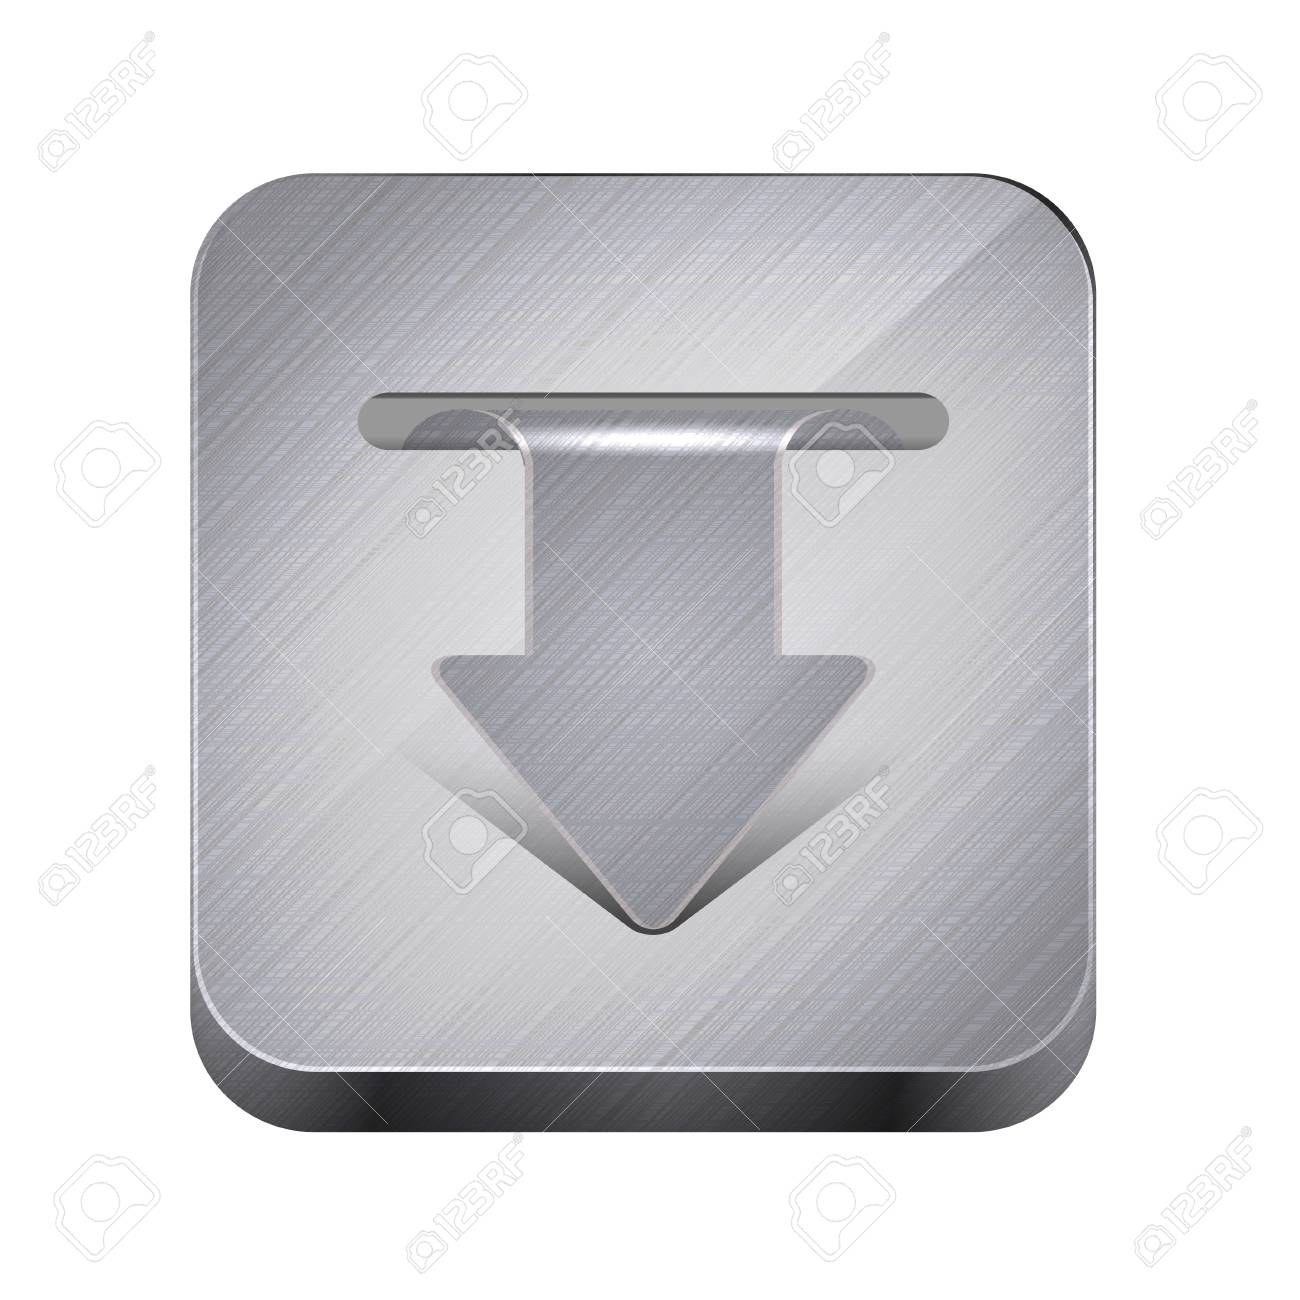 metal app icon isolated on white. Stock Vector - 15145232